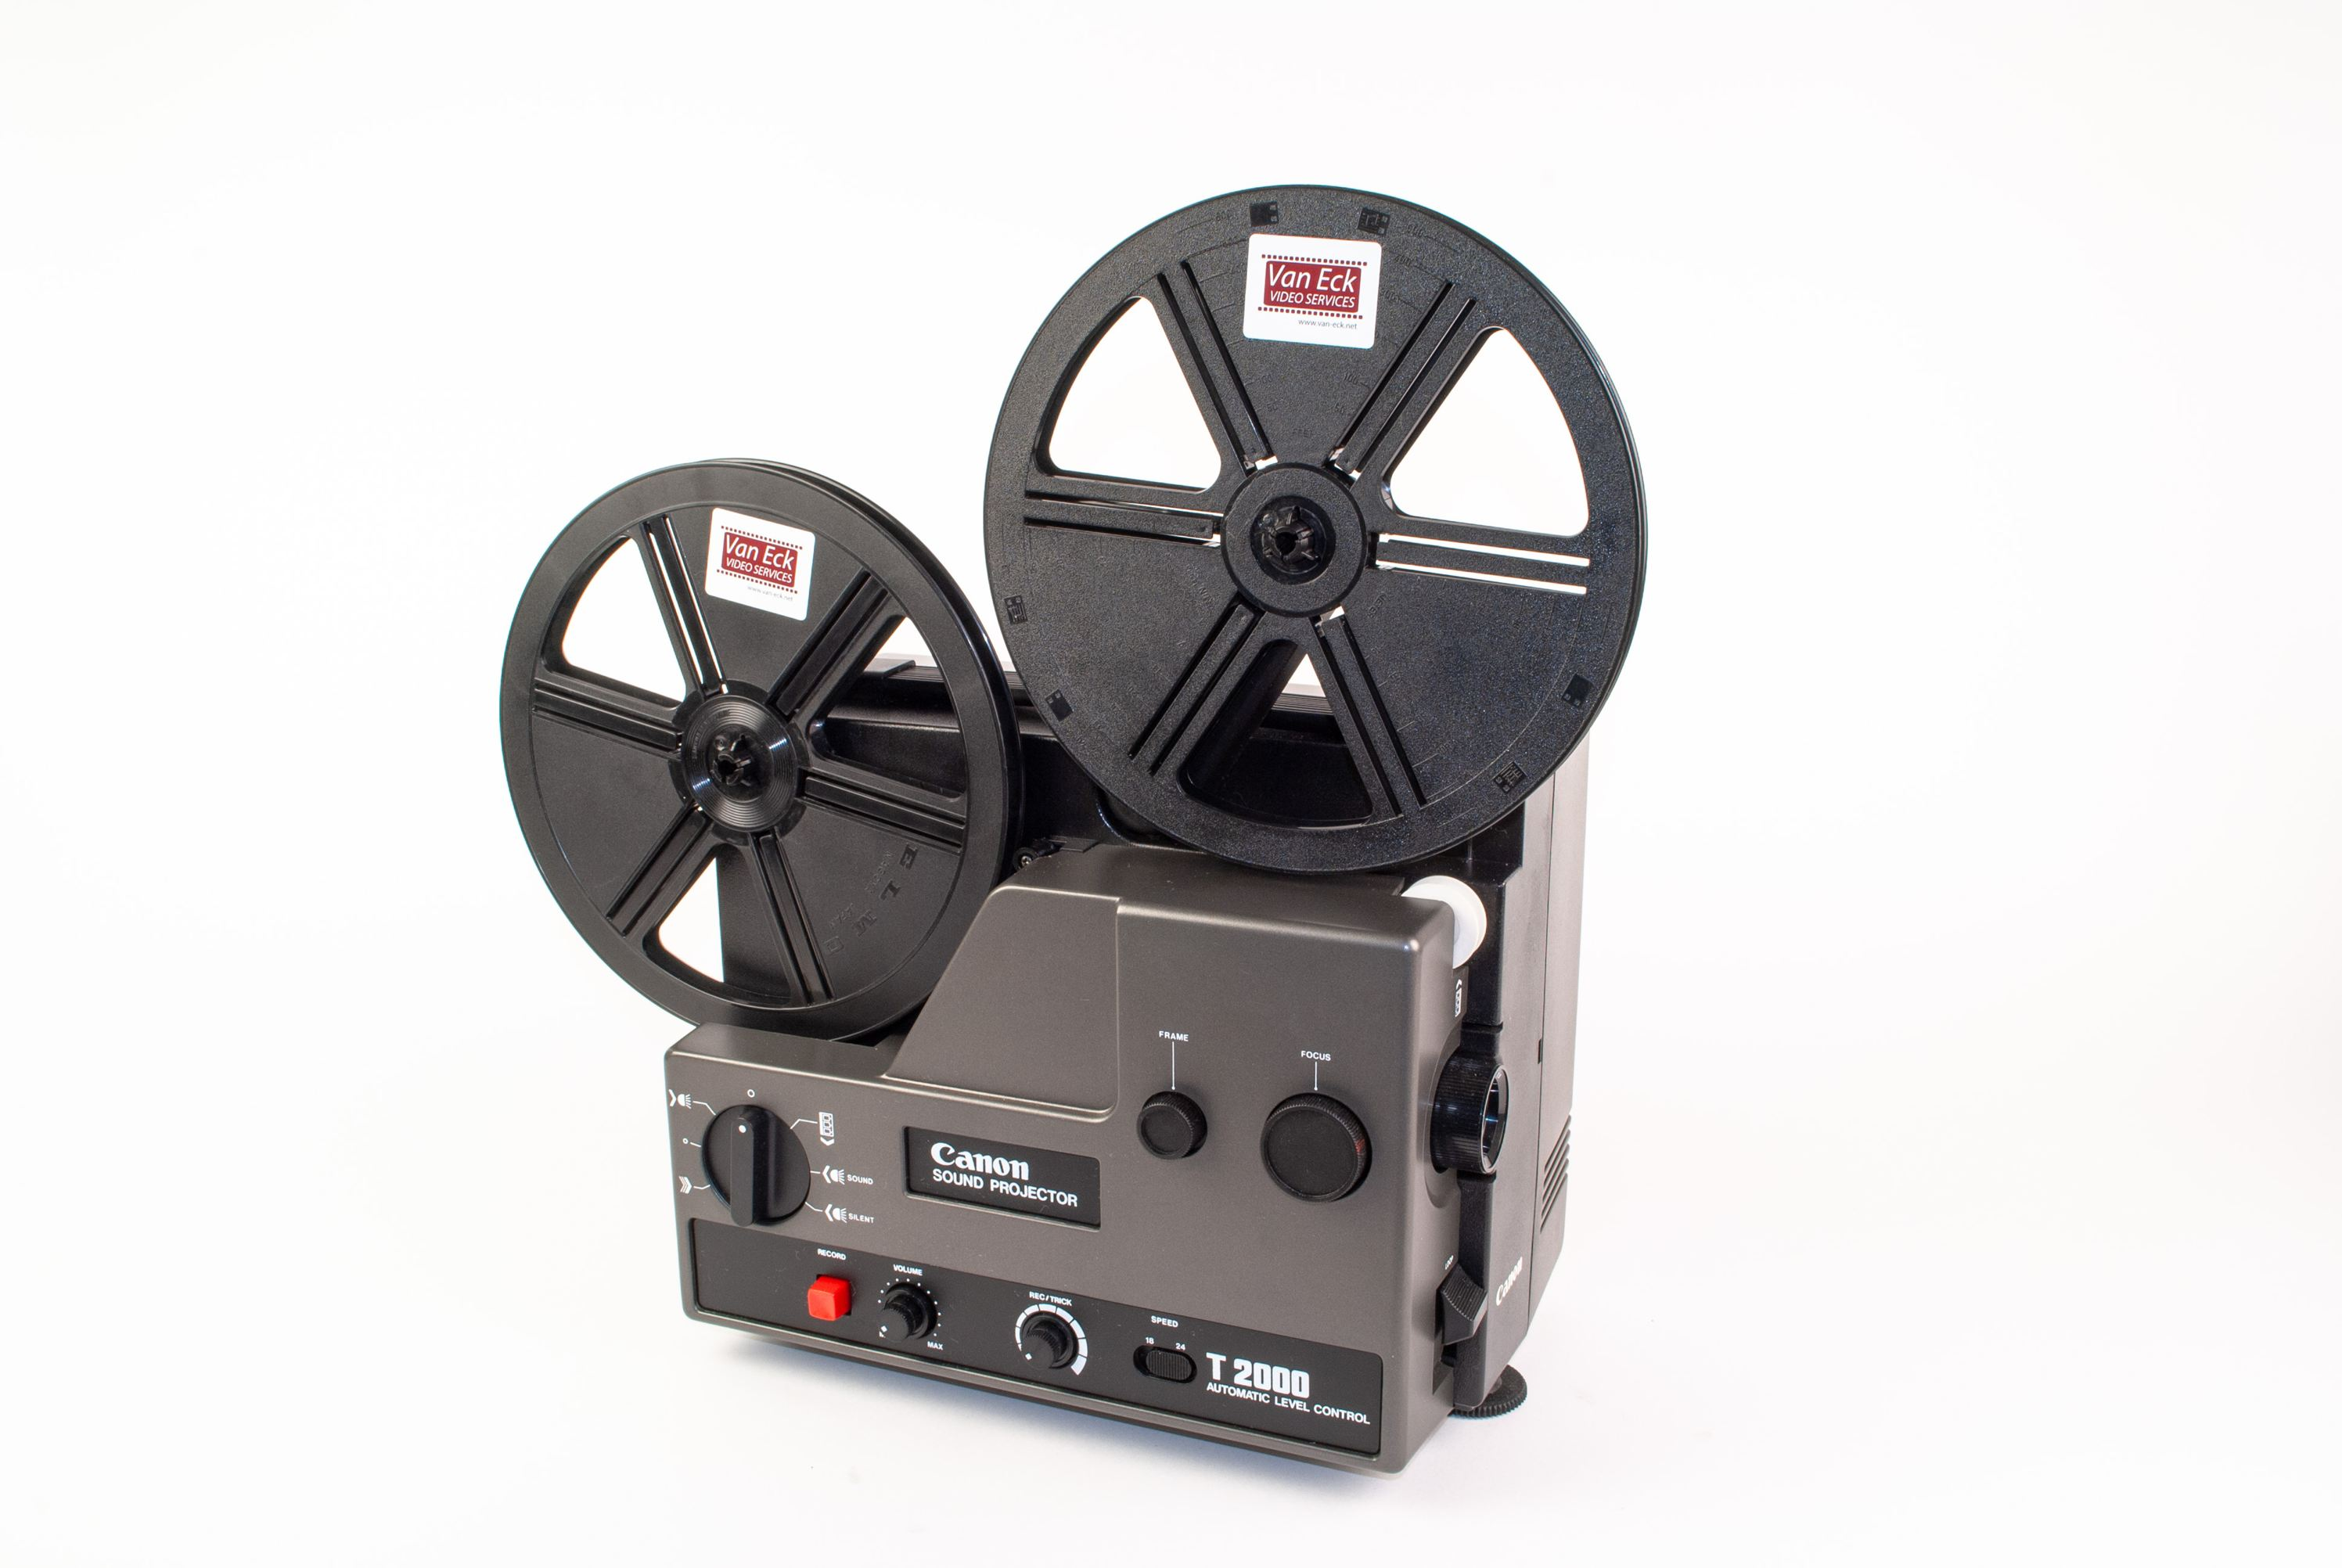 T2000 Sound Projector (DC model)